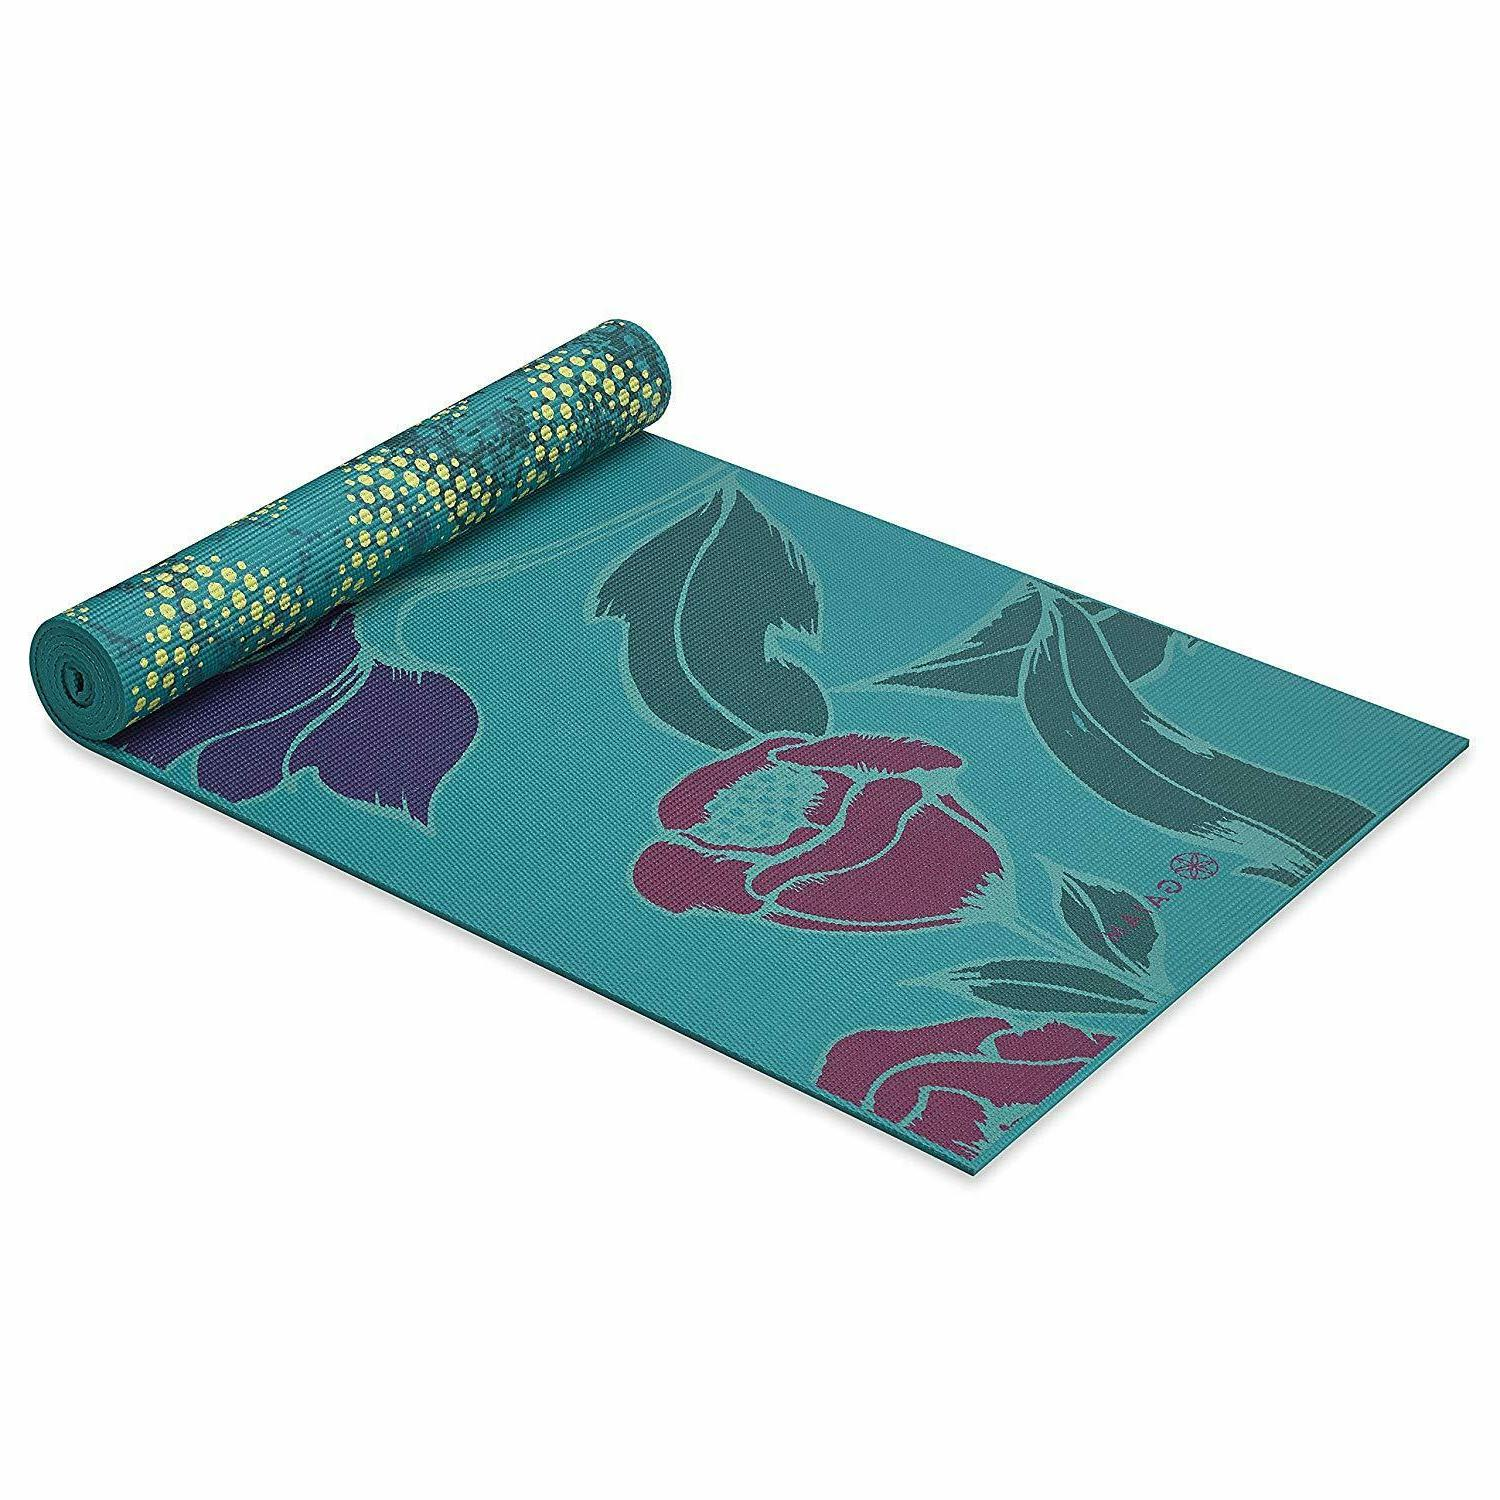 Thick Printed Floor Mats